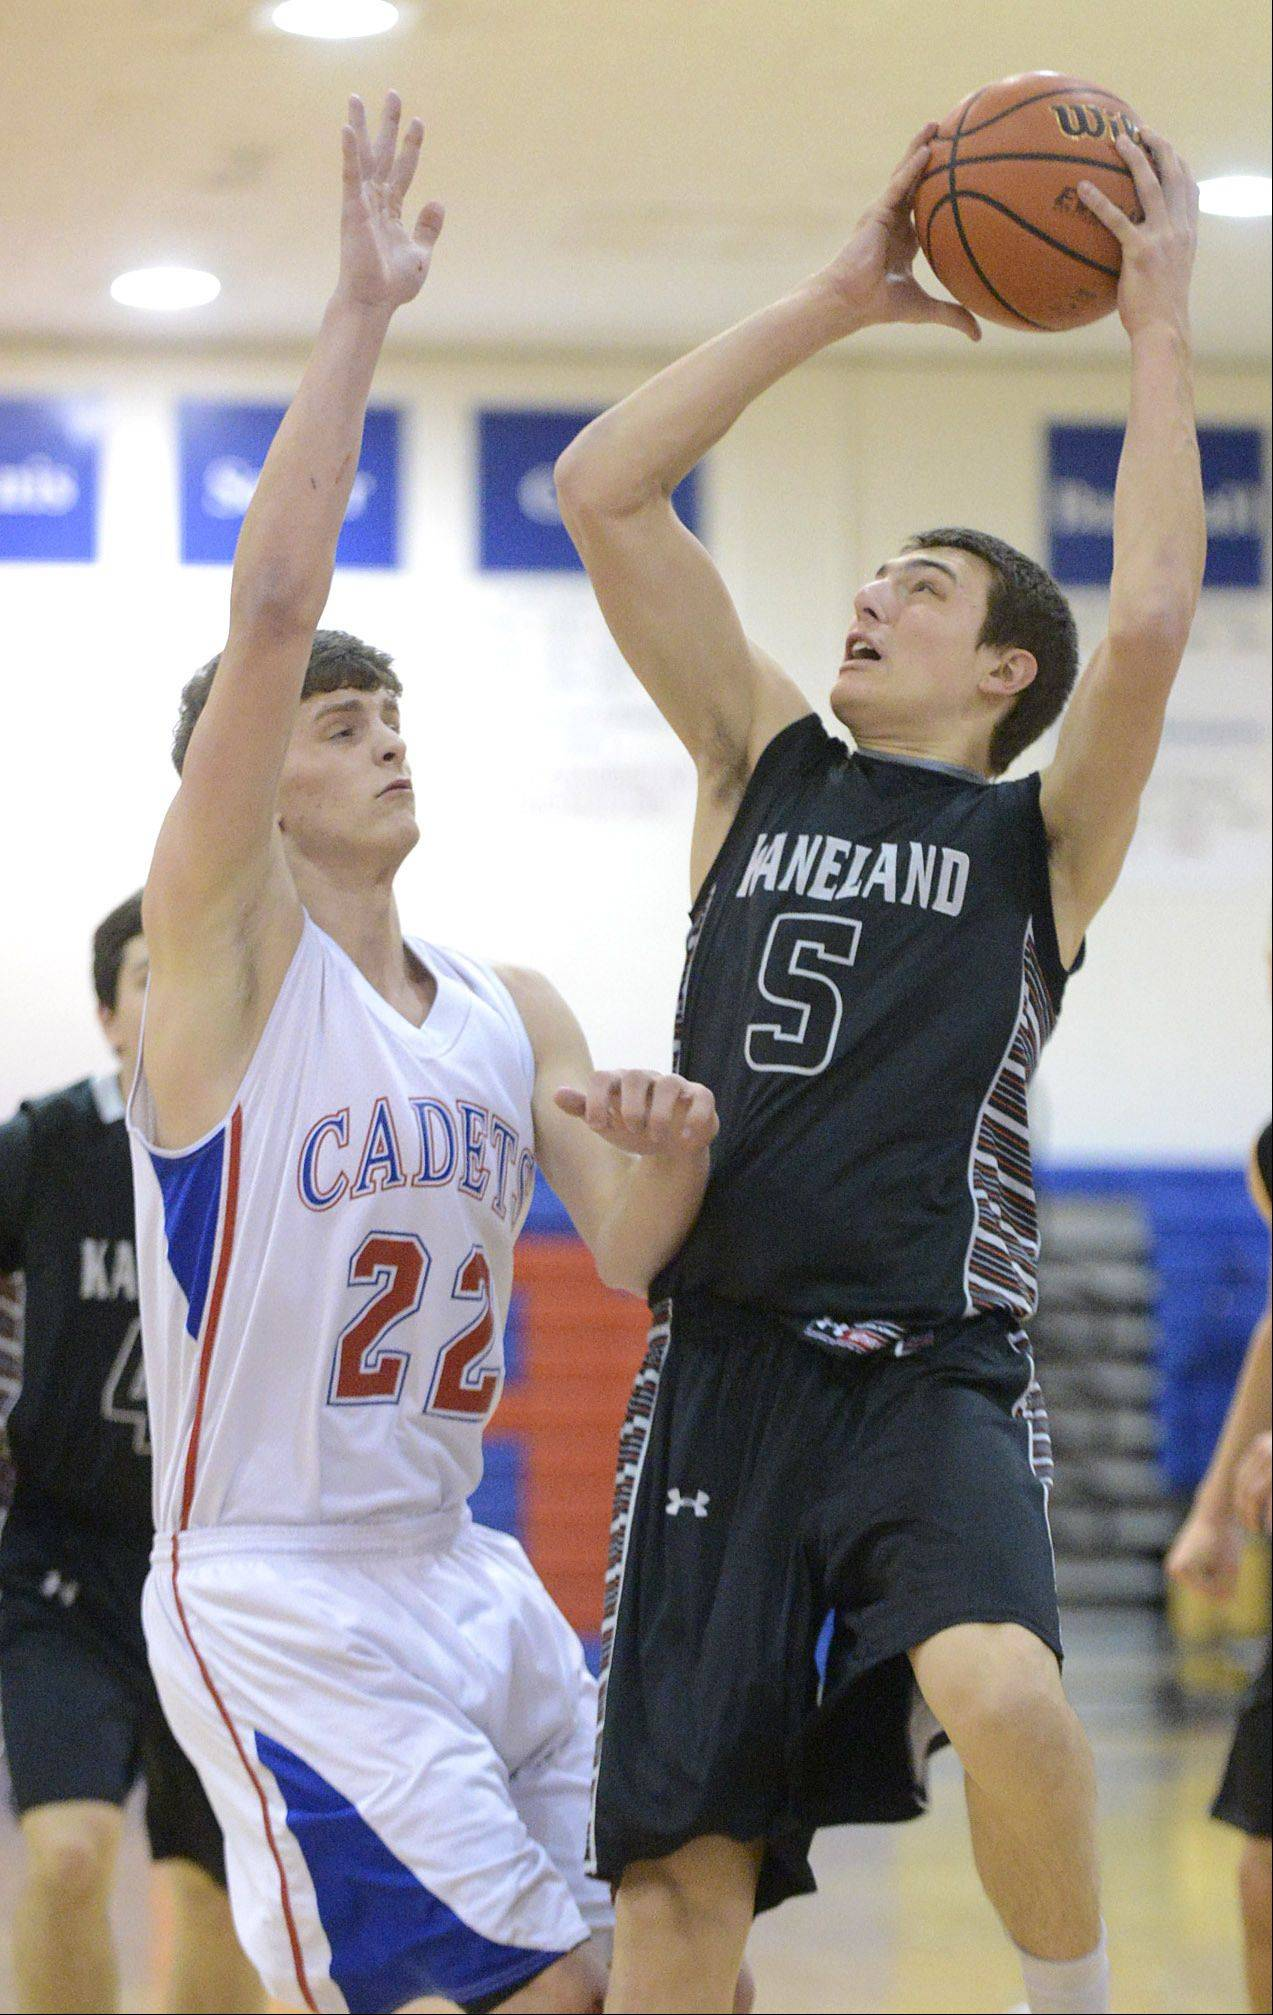 Kaneland's John Pruett shoots over a block by Marmion Academy's Jake Esp in the first quarter on Tuesday, January 14.